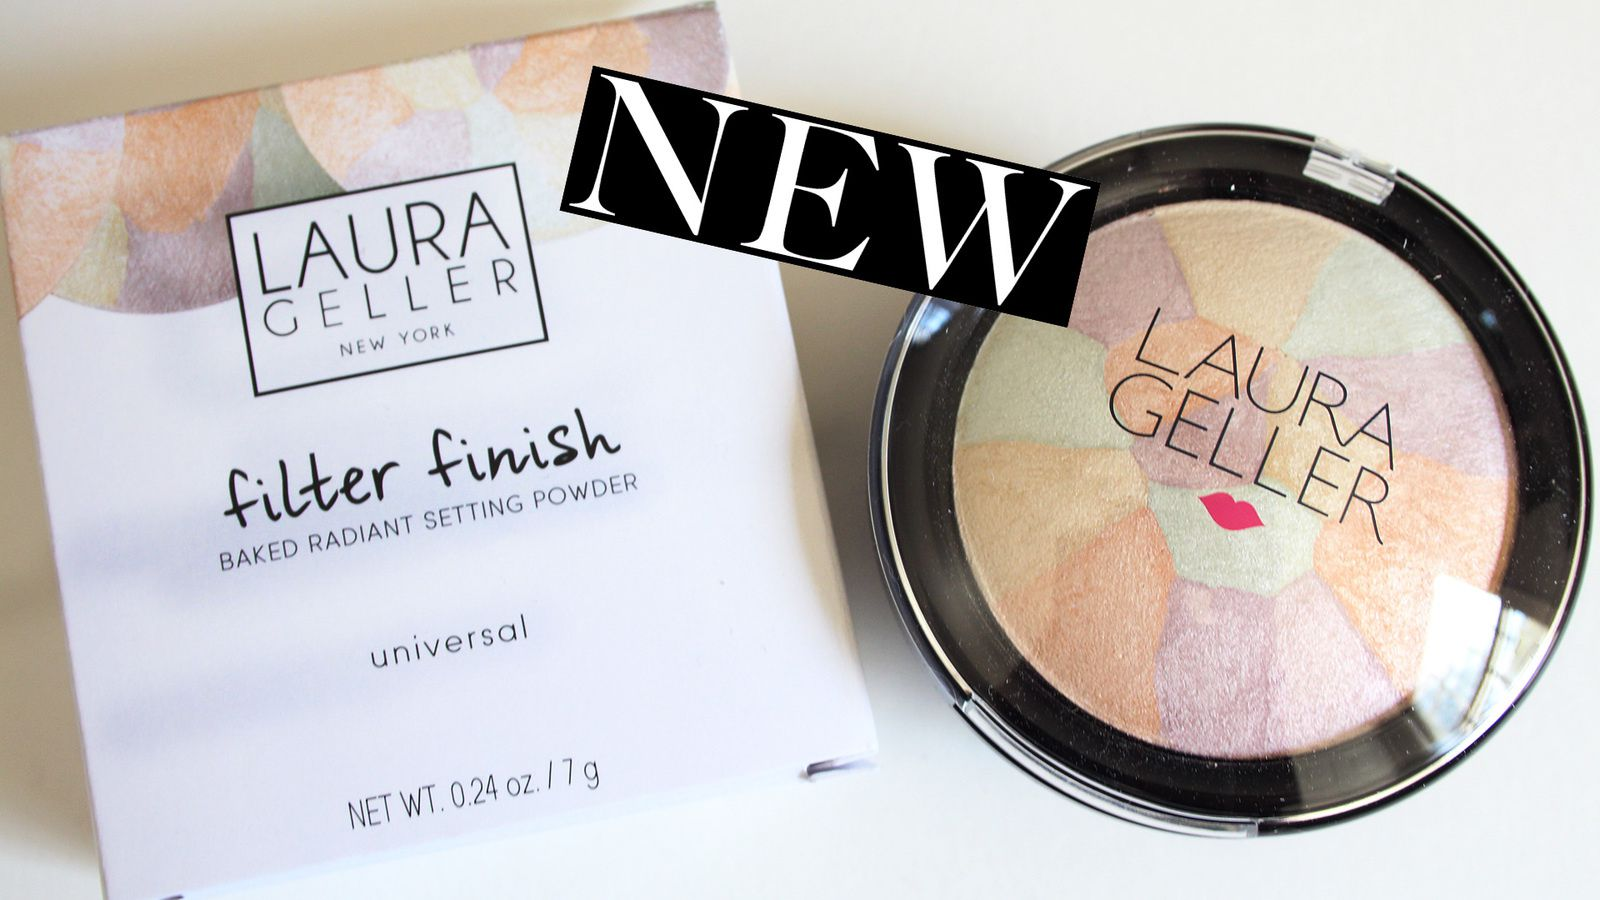 NEW Laura Geller Filter Finish Setting Powder REVIEW